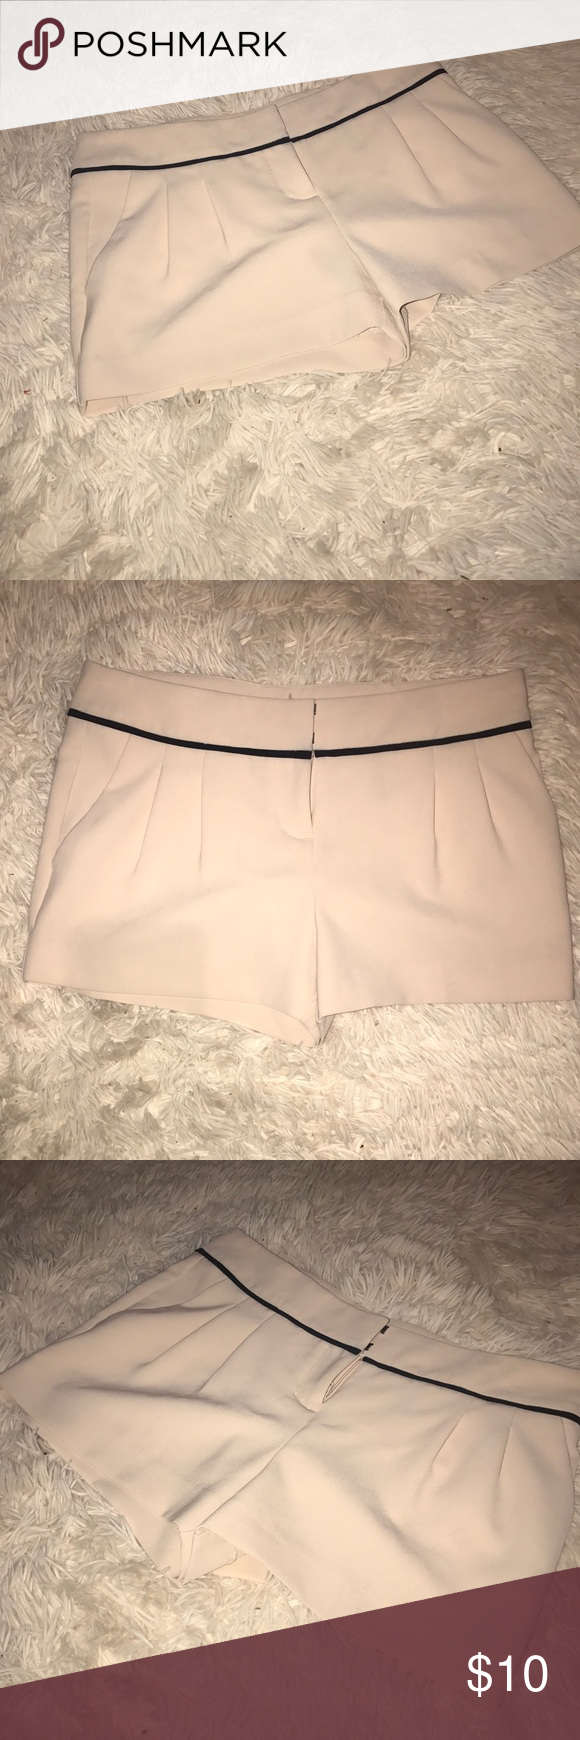 Cream Shorts Cream shorts. Great quality material. They say they're a size 00 but it definitely runs big. Could fit a size small. *never worn* Express Shorts